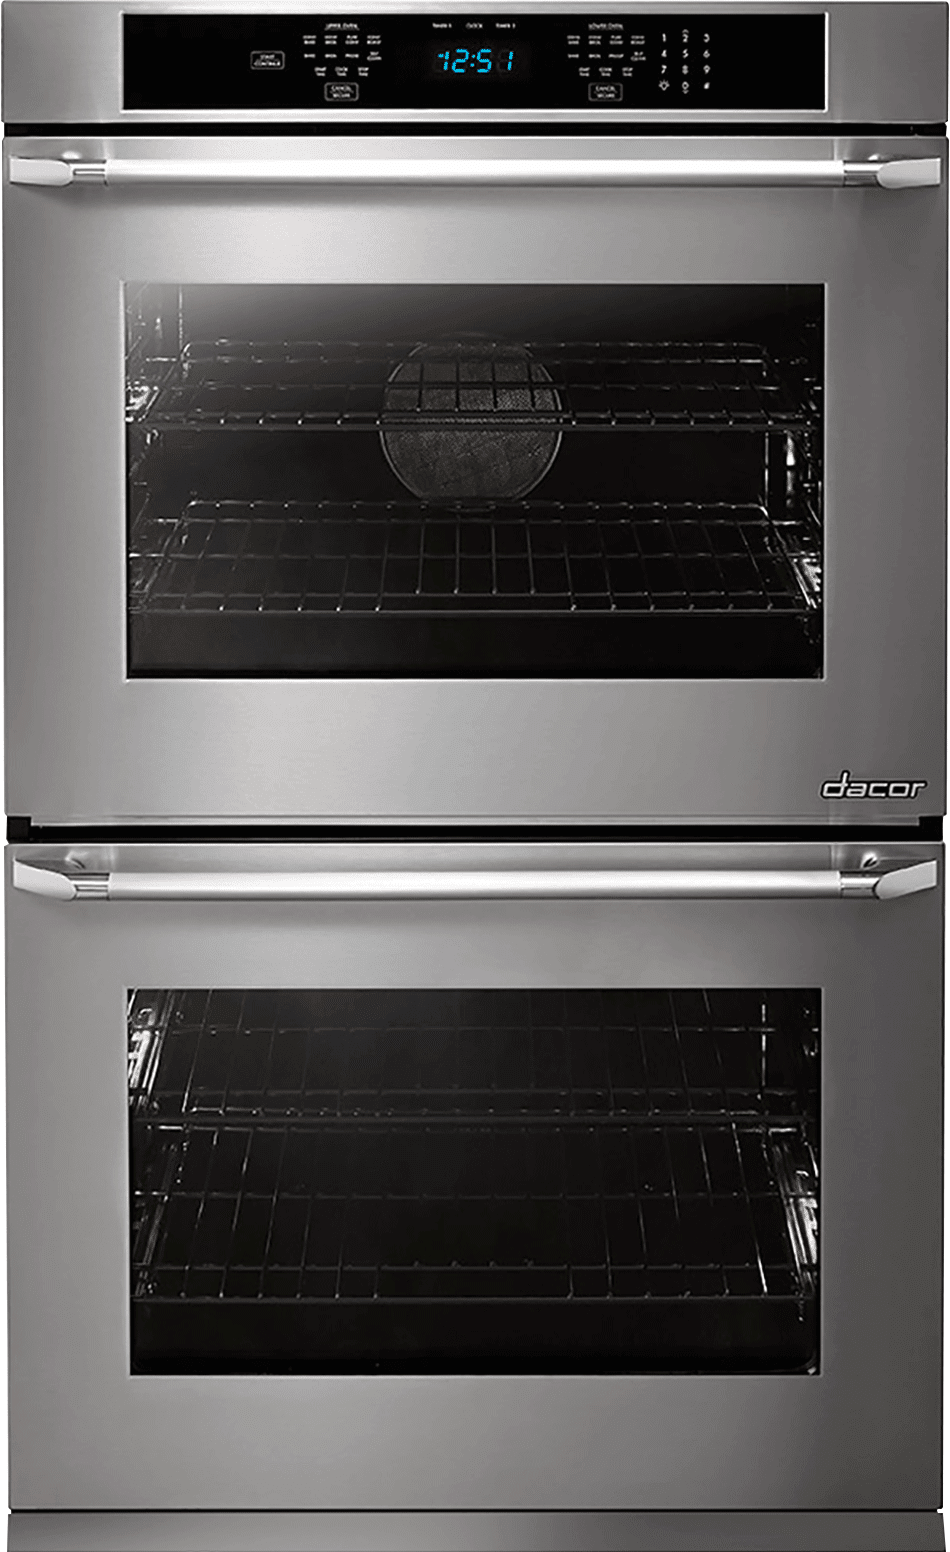 Dacor DTO230S 30 Inch Double Electric Wall Oven with Convection, Steam,  Self-Clean, Hidden Bake Element, 4.8 cu. ft. Top Oven, 6 Cooking Modes, ...